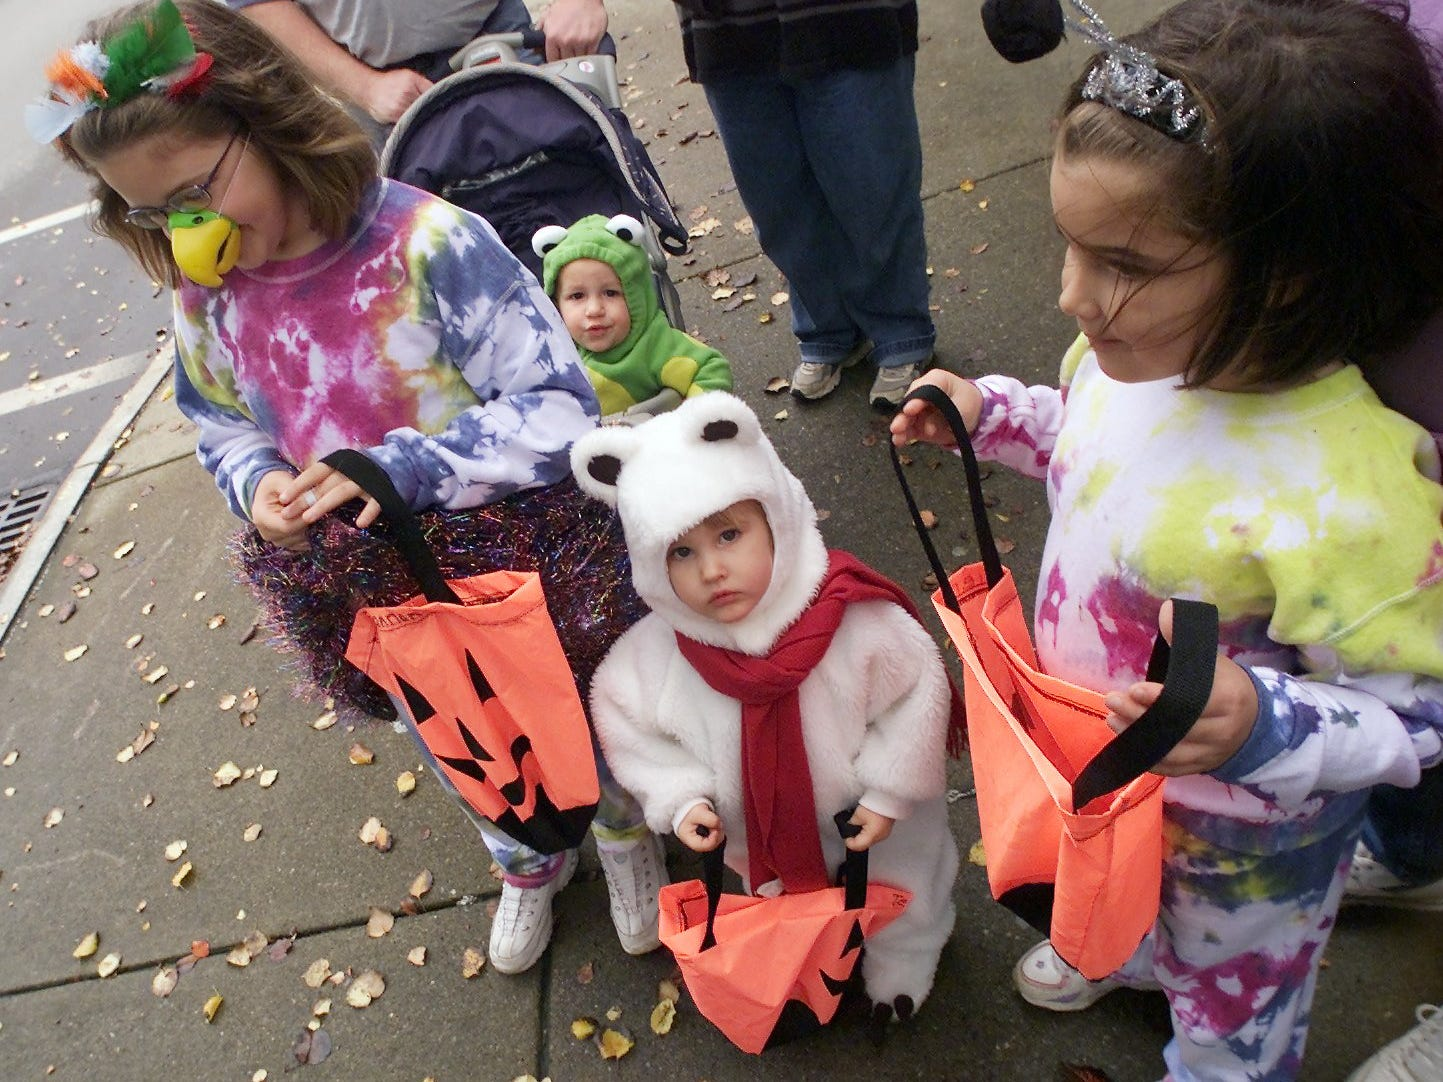 2004: All dressed up on Bridge Street and getting ready to fill their bags with Halloween treats are, from left, Shannon Dowdle, 9, Brandon Zydanowicz, 20 months, Jessica Dowdle, 2, and Sierra Dowdle, 6.